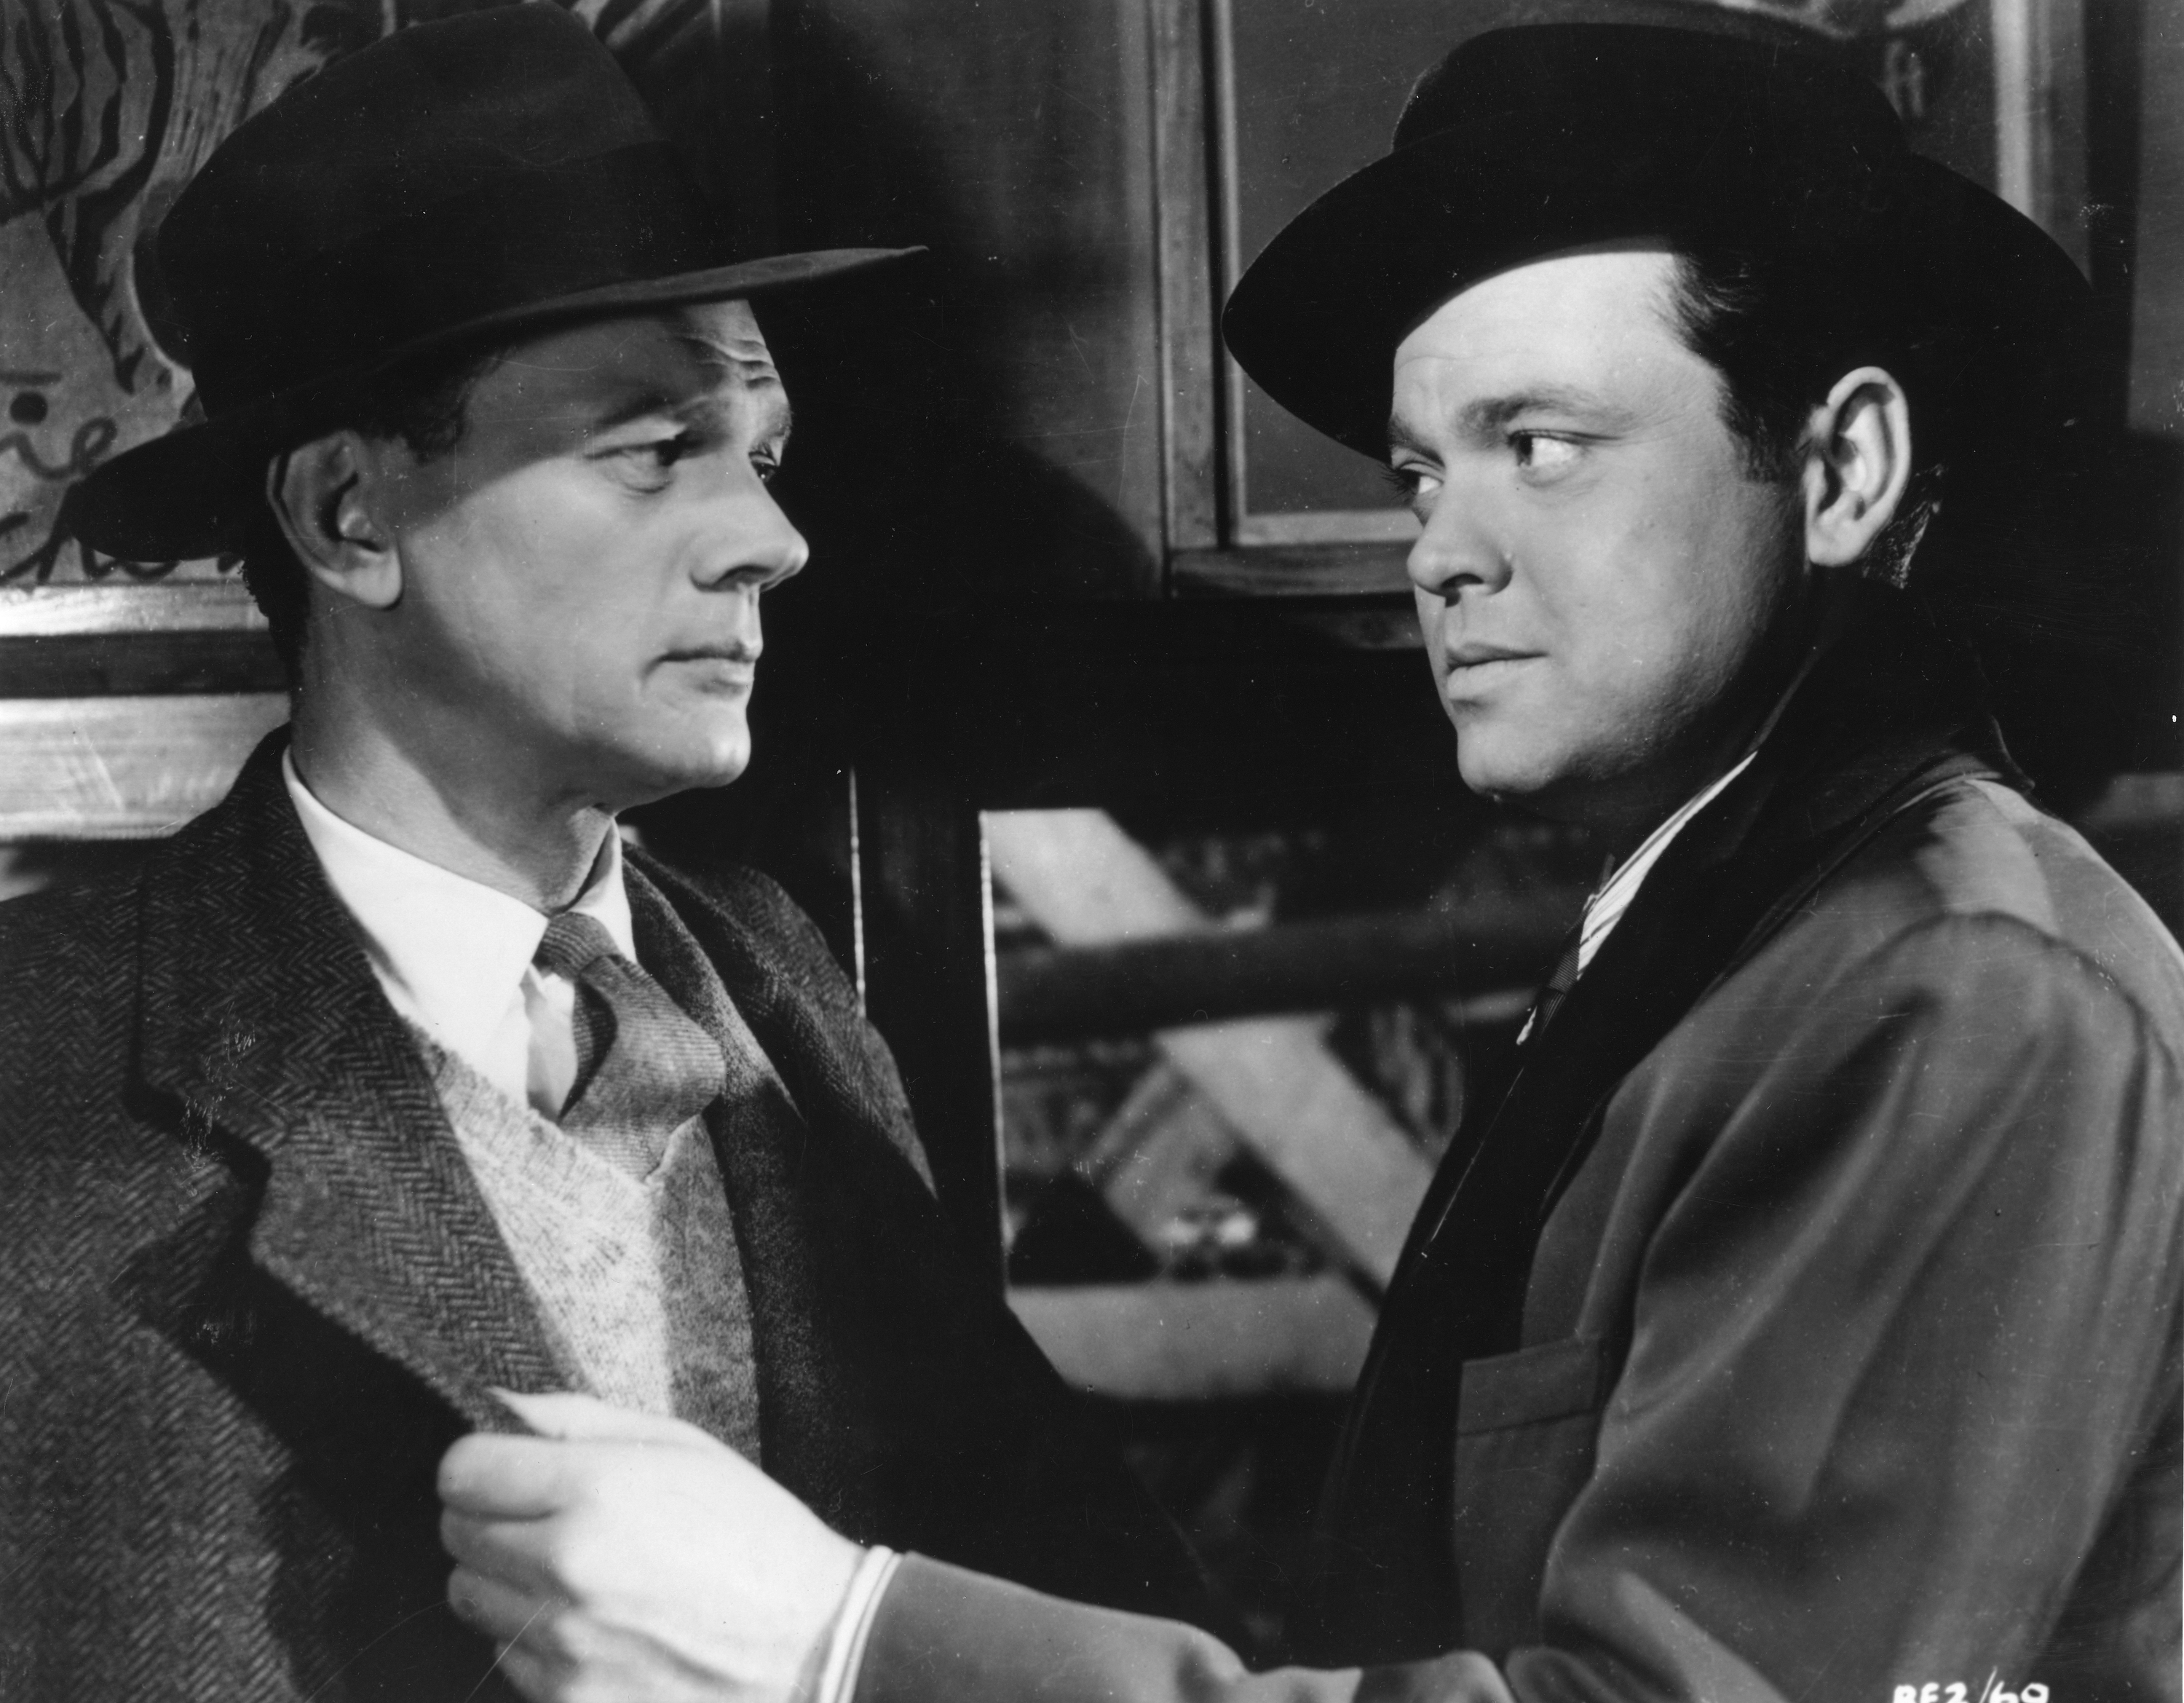 Exclusive trailer for the 70th anniversary re-release of 'The Third Man'